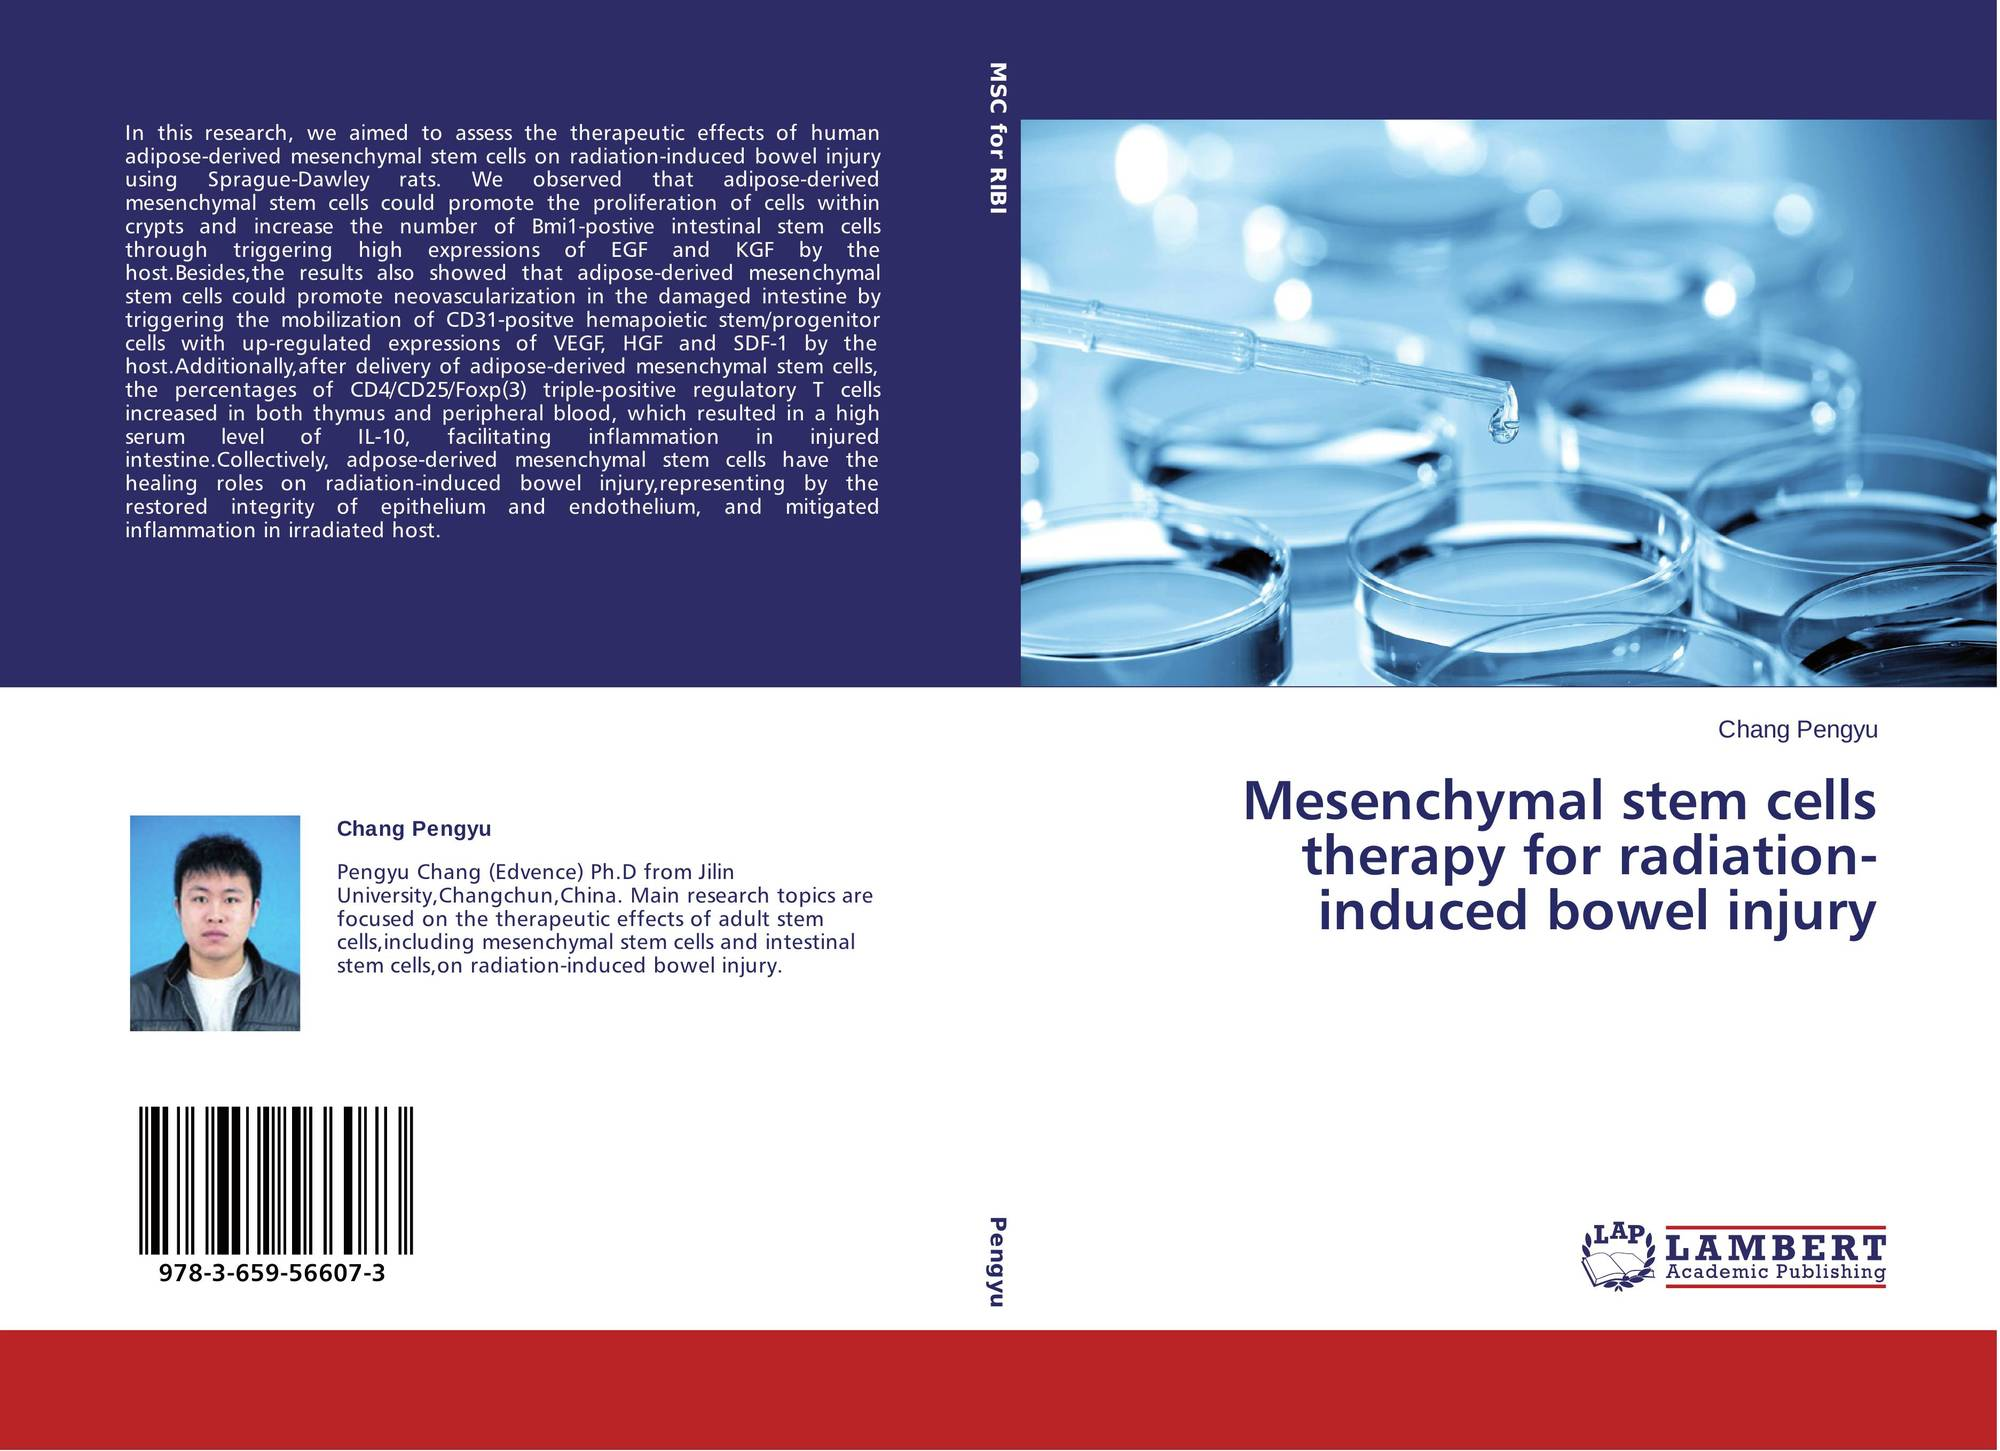 Multilineage potential of adult human mesenchymal stem  erotic tube